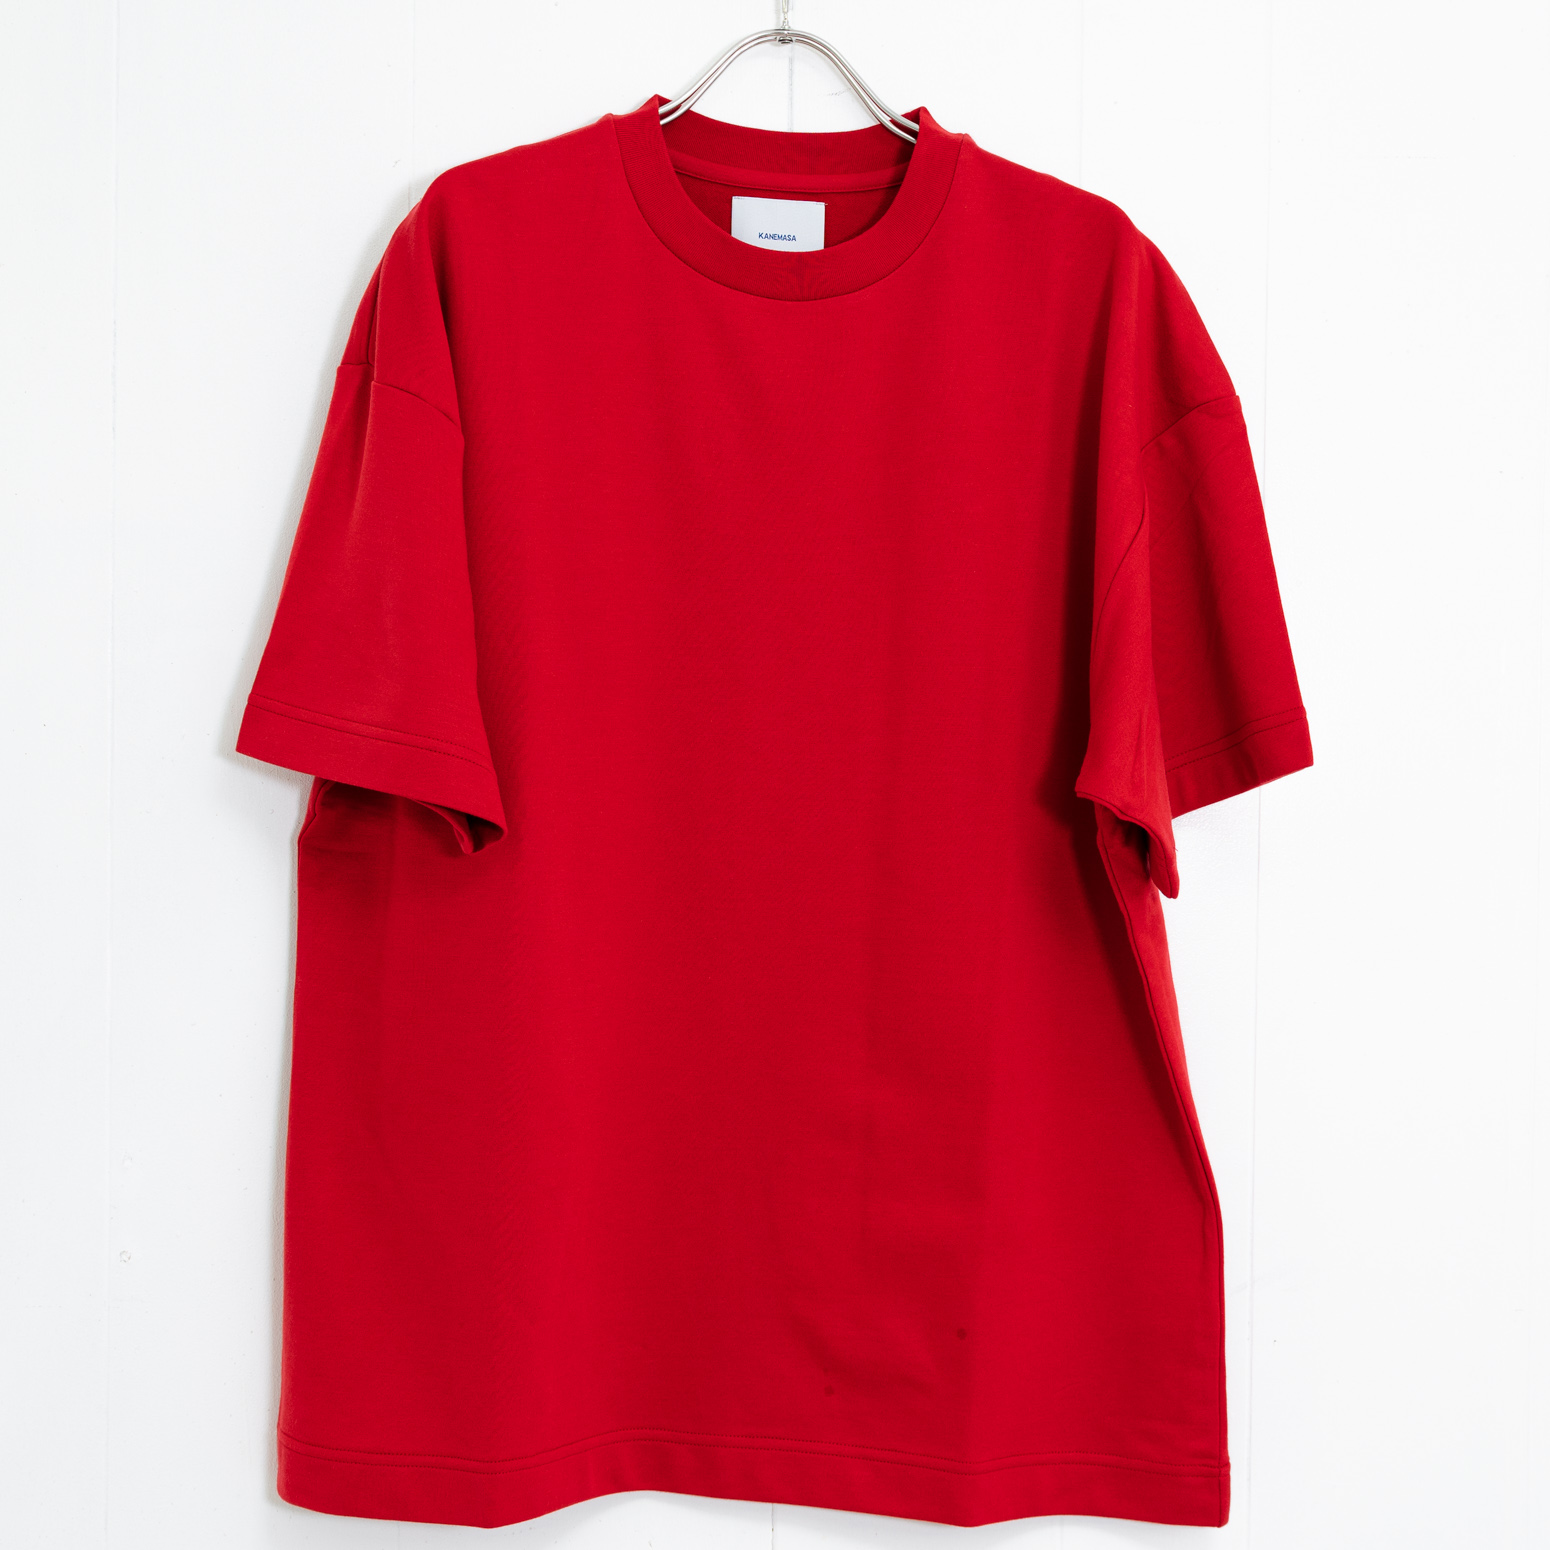 【sold out】Super High Gauge Loose Fit Crew neck cut & sew